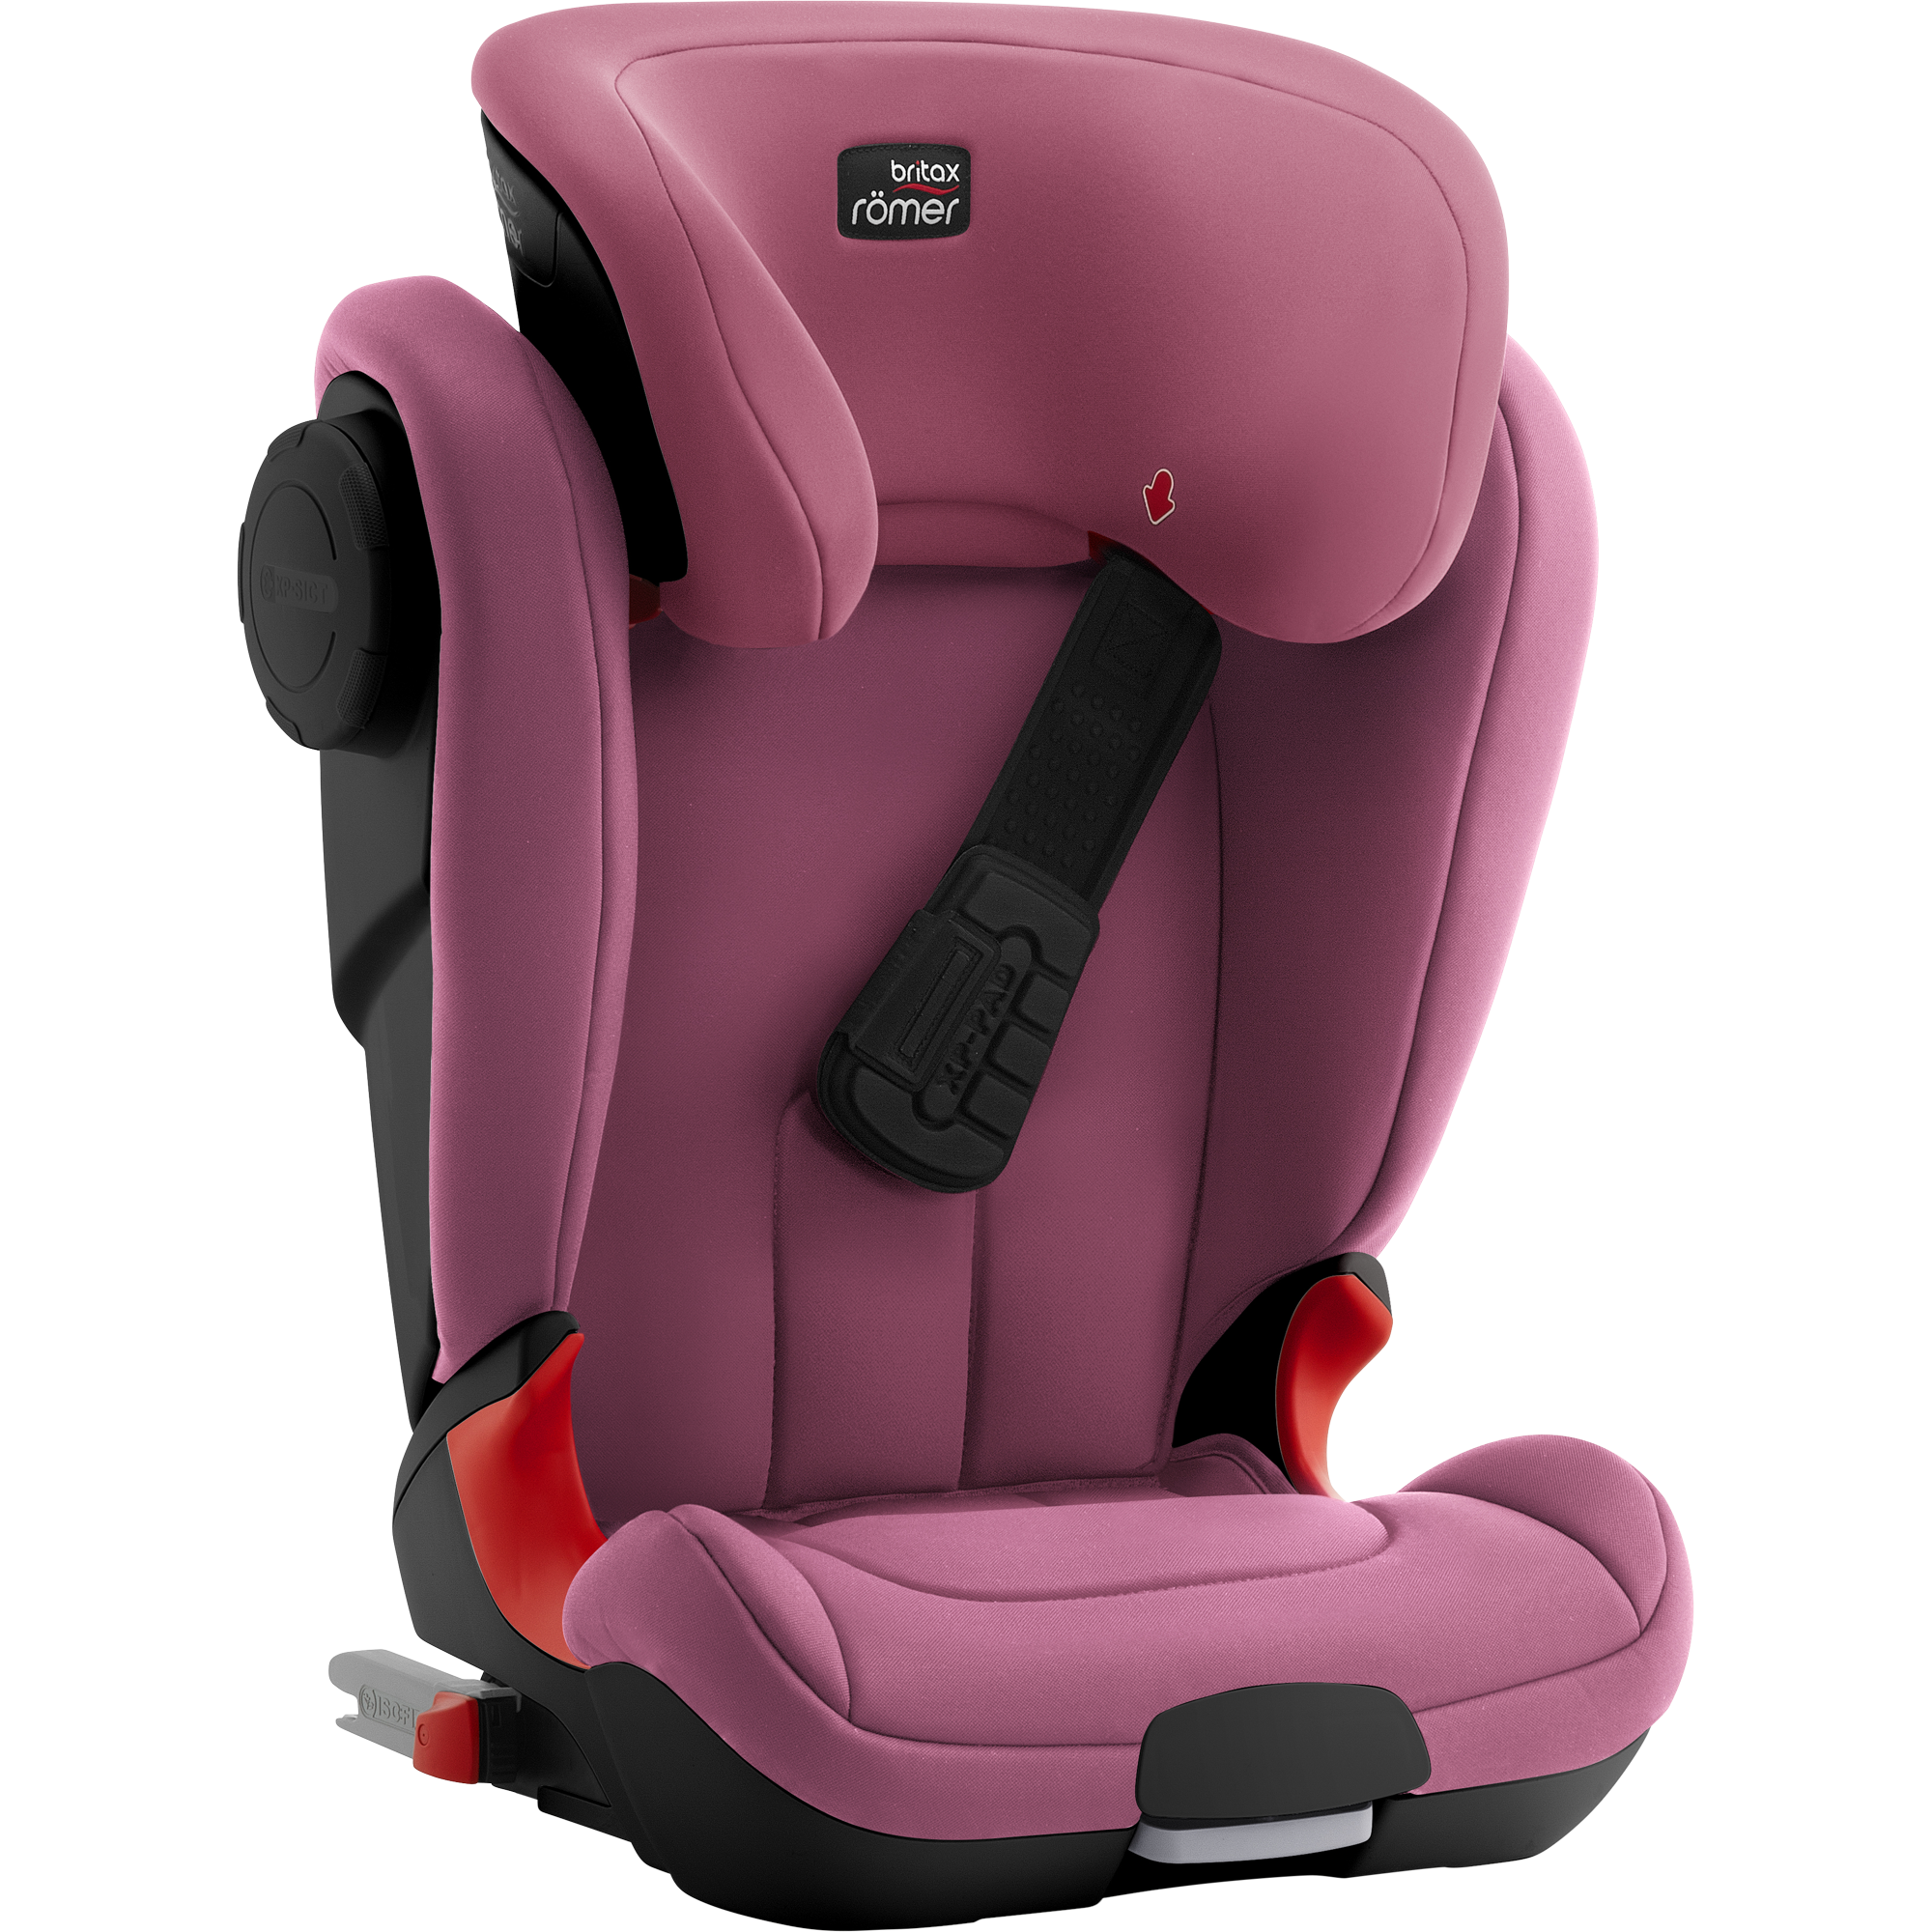 autoseda ka britax r mer kidfix xp sict black wine rose 2018. Black Bedroom Furniture Sets. Home Design Ideas